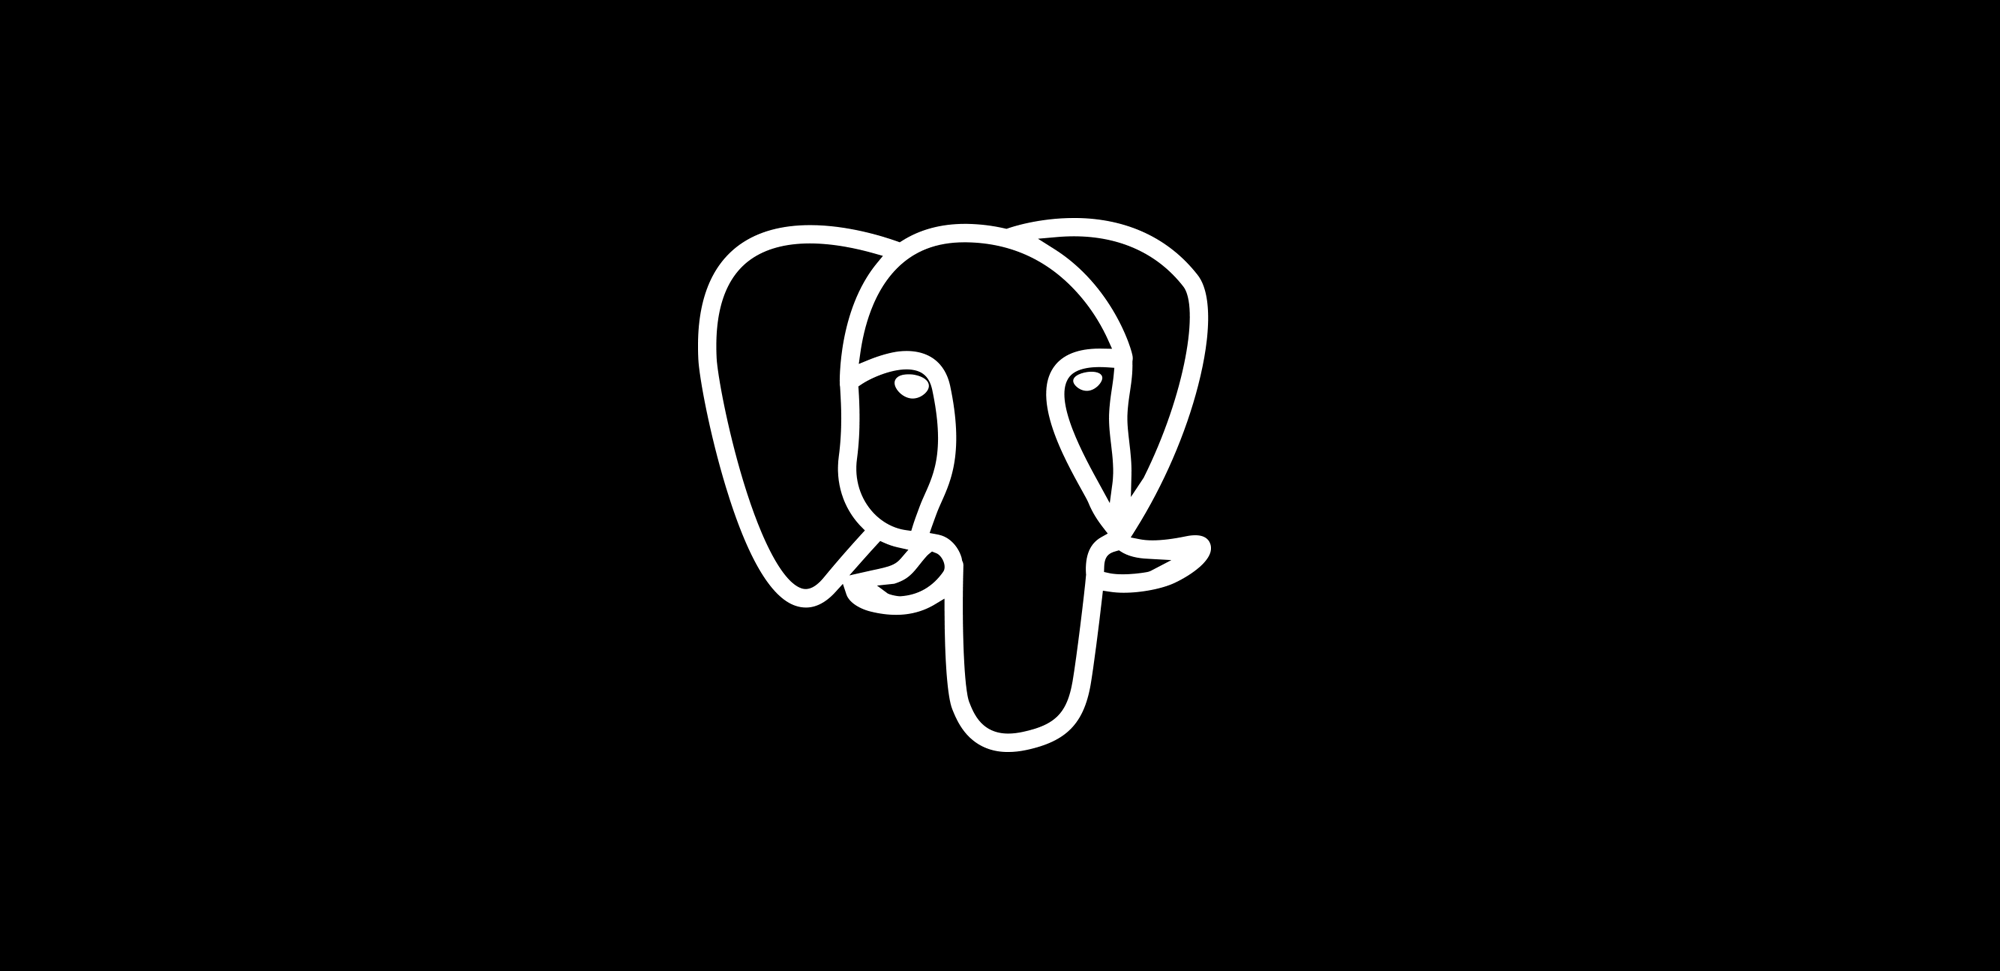 Migrating from RethinkDB to Postgres — An Experience Report